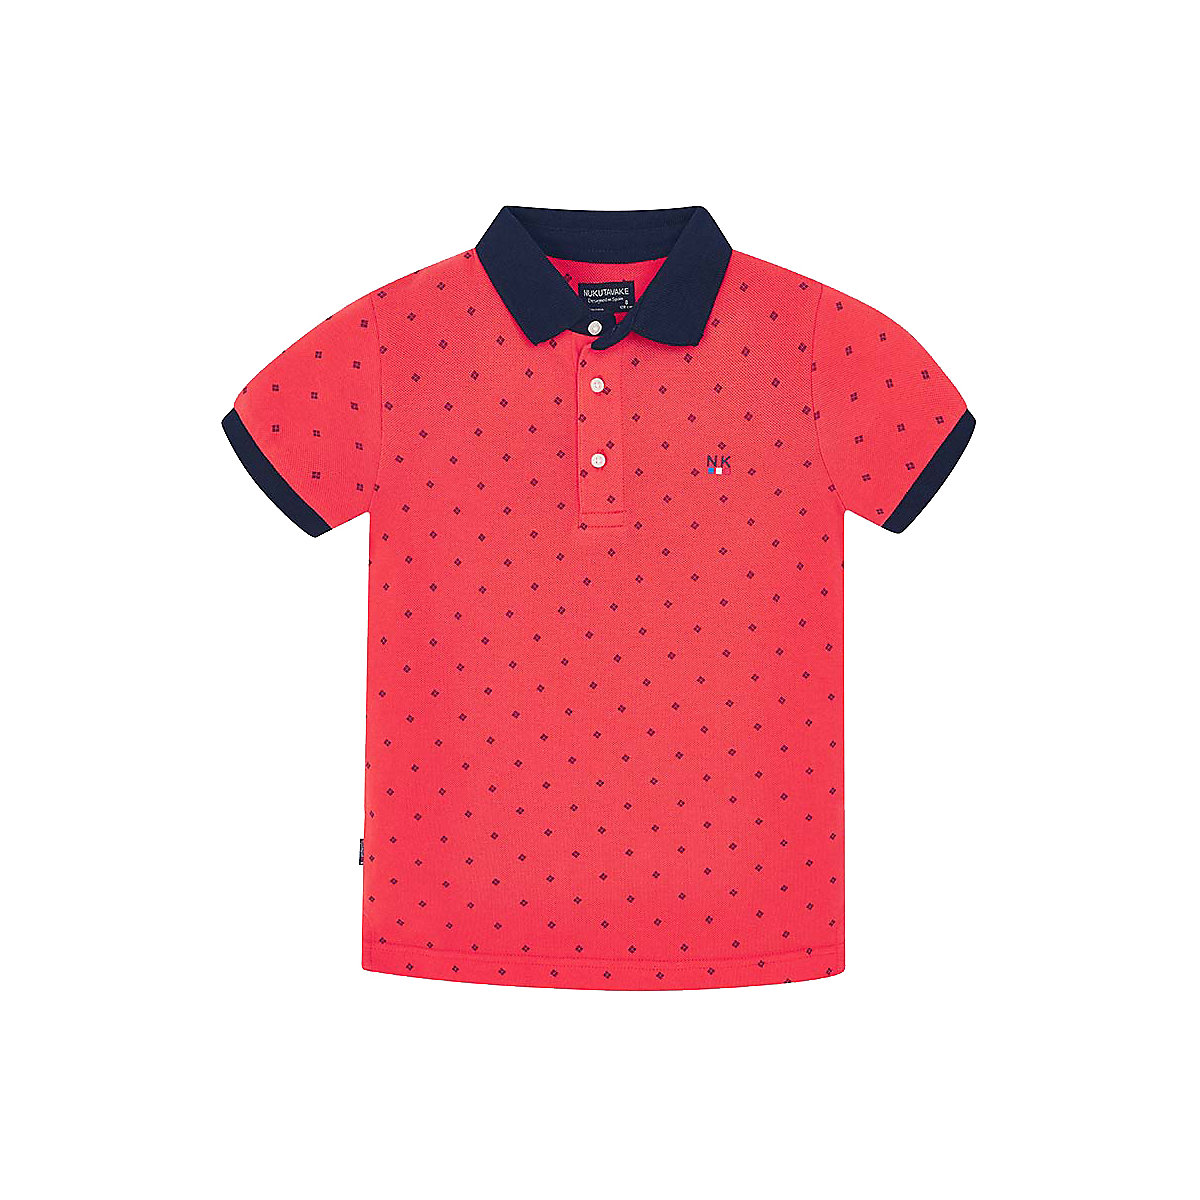 Фото - MAYORAL Polo Shirts 10685993 children clothing t-shirt shirt the print for boys t shirts modis m182m00016 shirt cotton polo for for male for man tmallfs